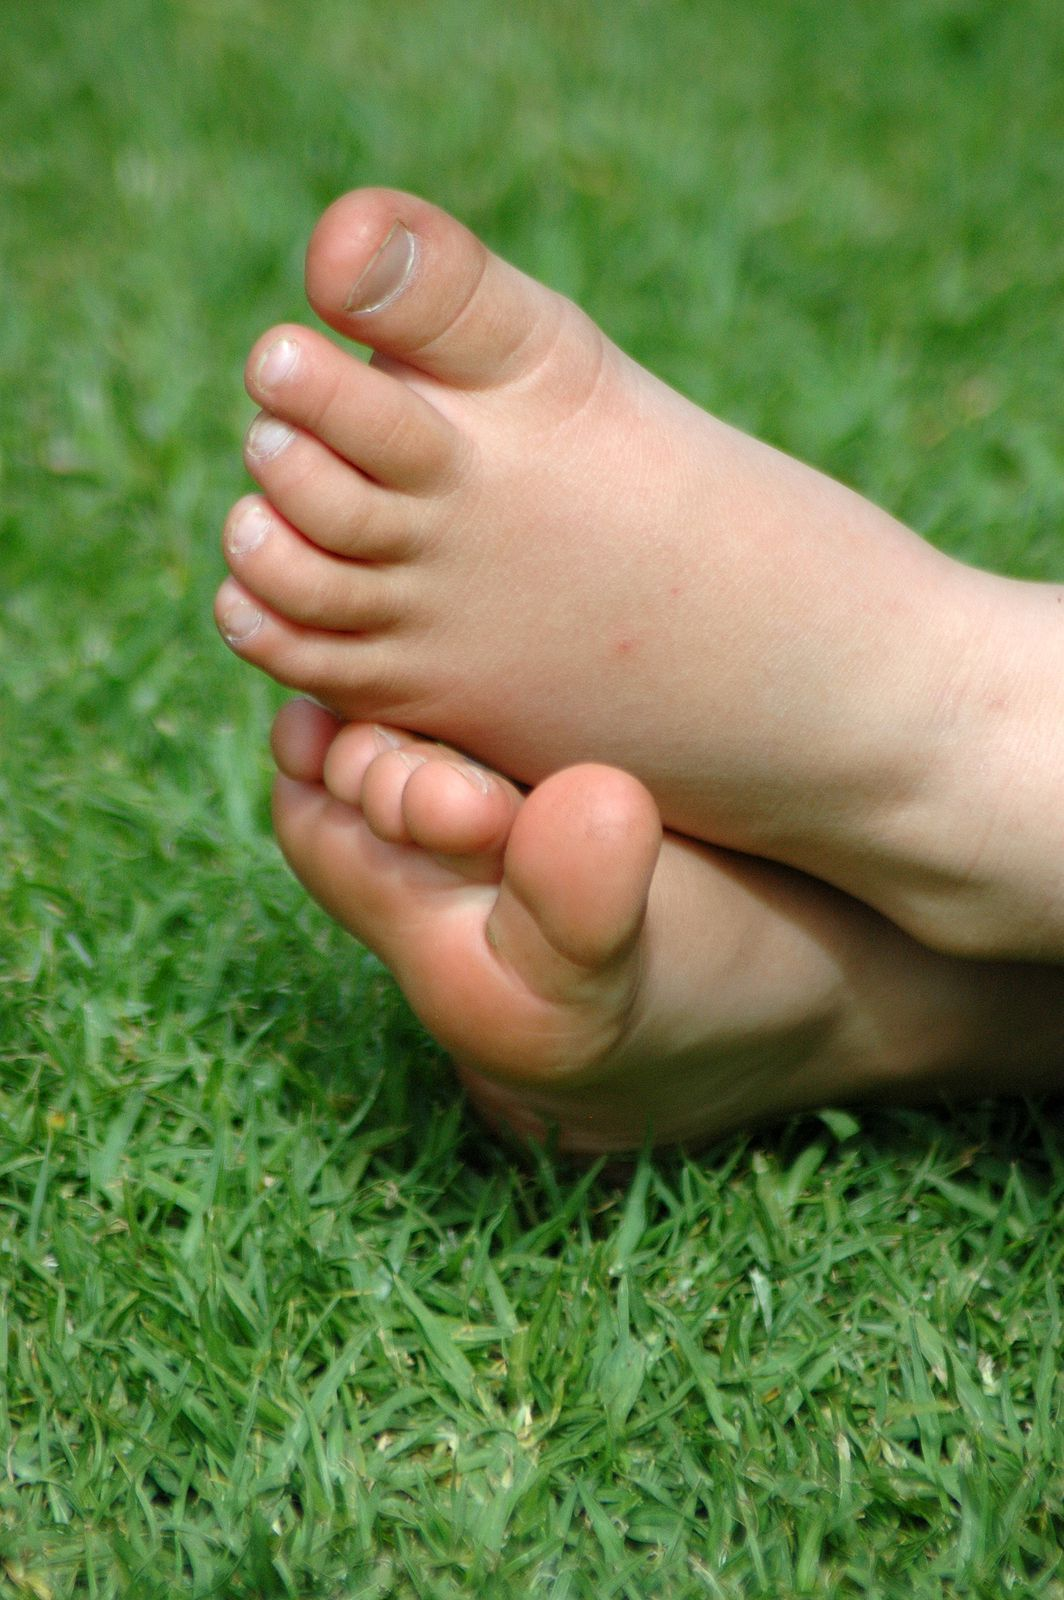 Treating Pediatric Bunions